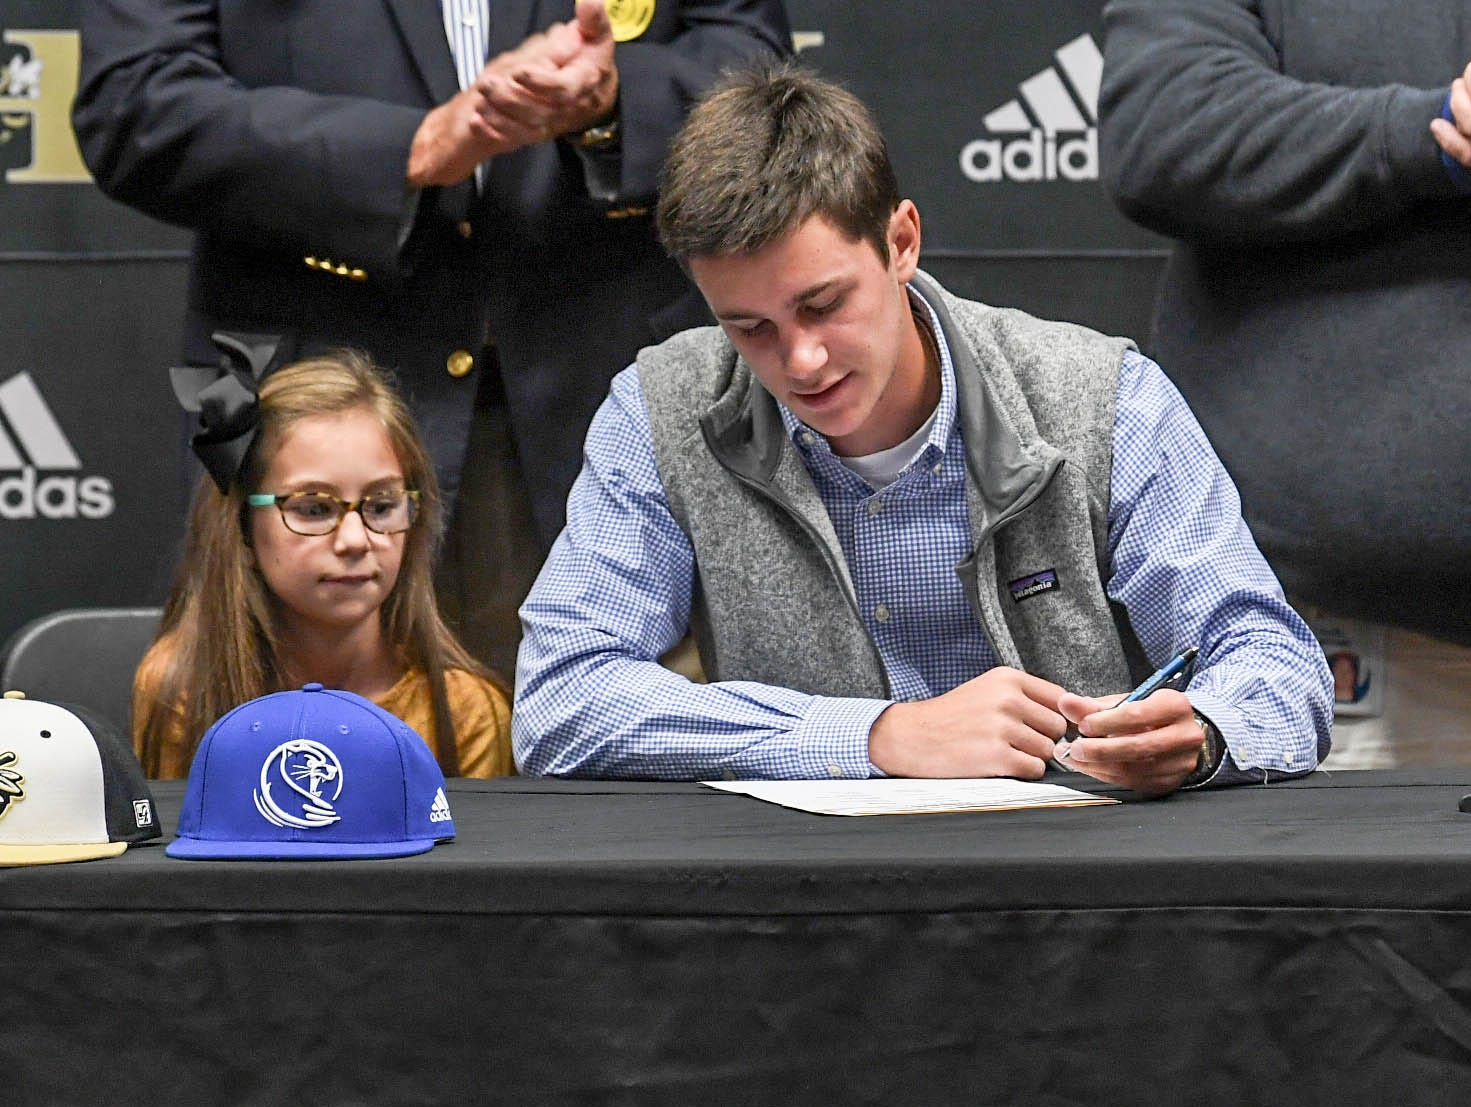 Jackson Bryant signs a letter of intent to play baseball at the Lander University, during a National Signing Day event at T.L. Hanna High School in Anderson on Wednesday.